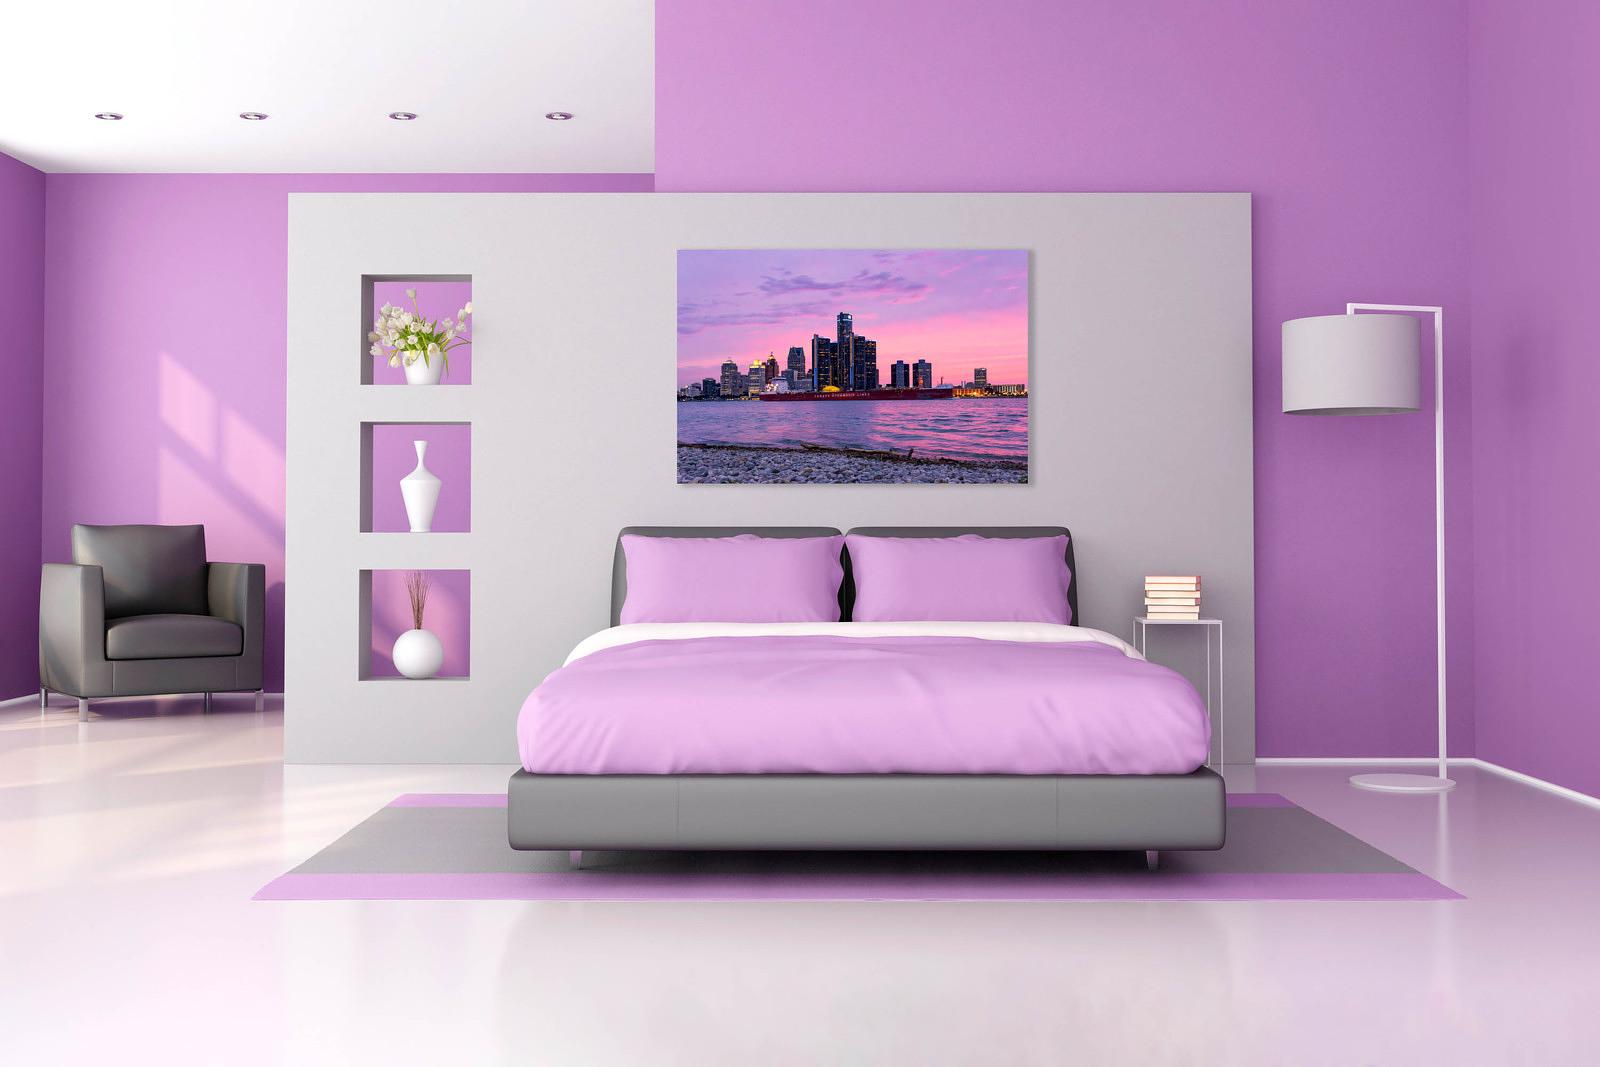 Bedroom_Skyline_Freighter_2